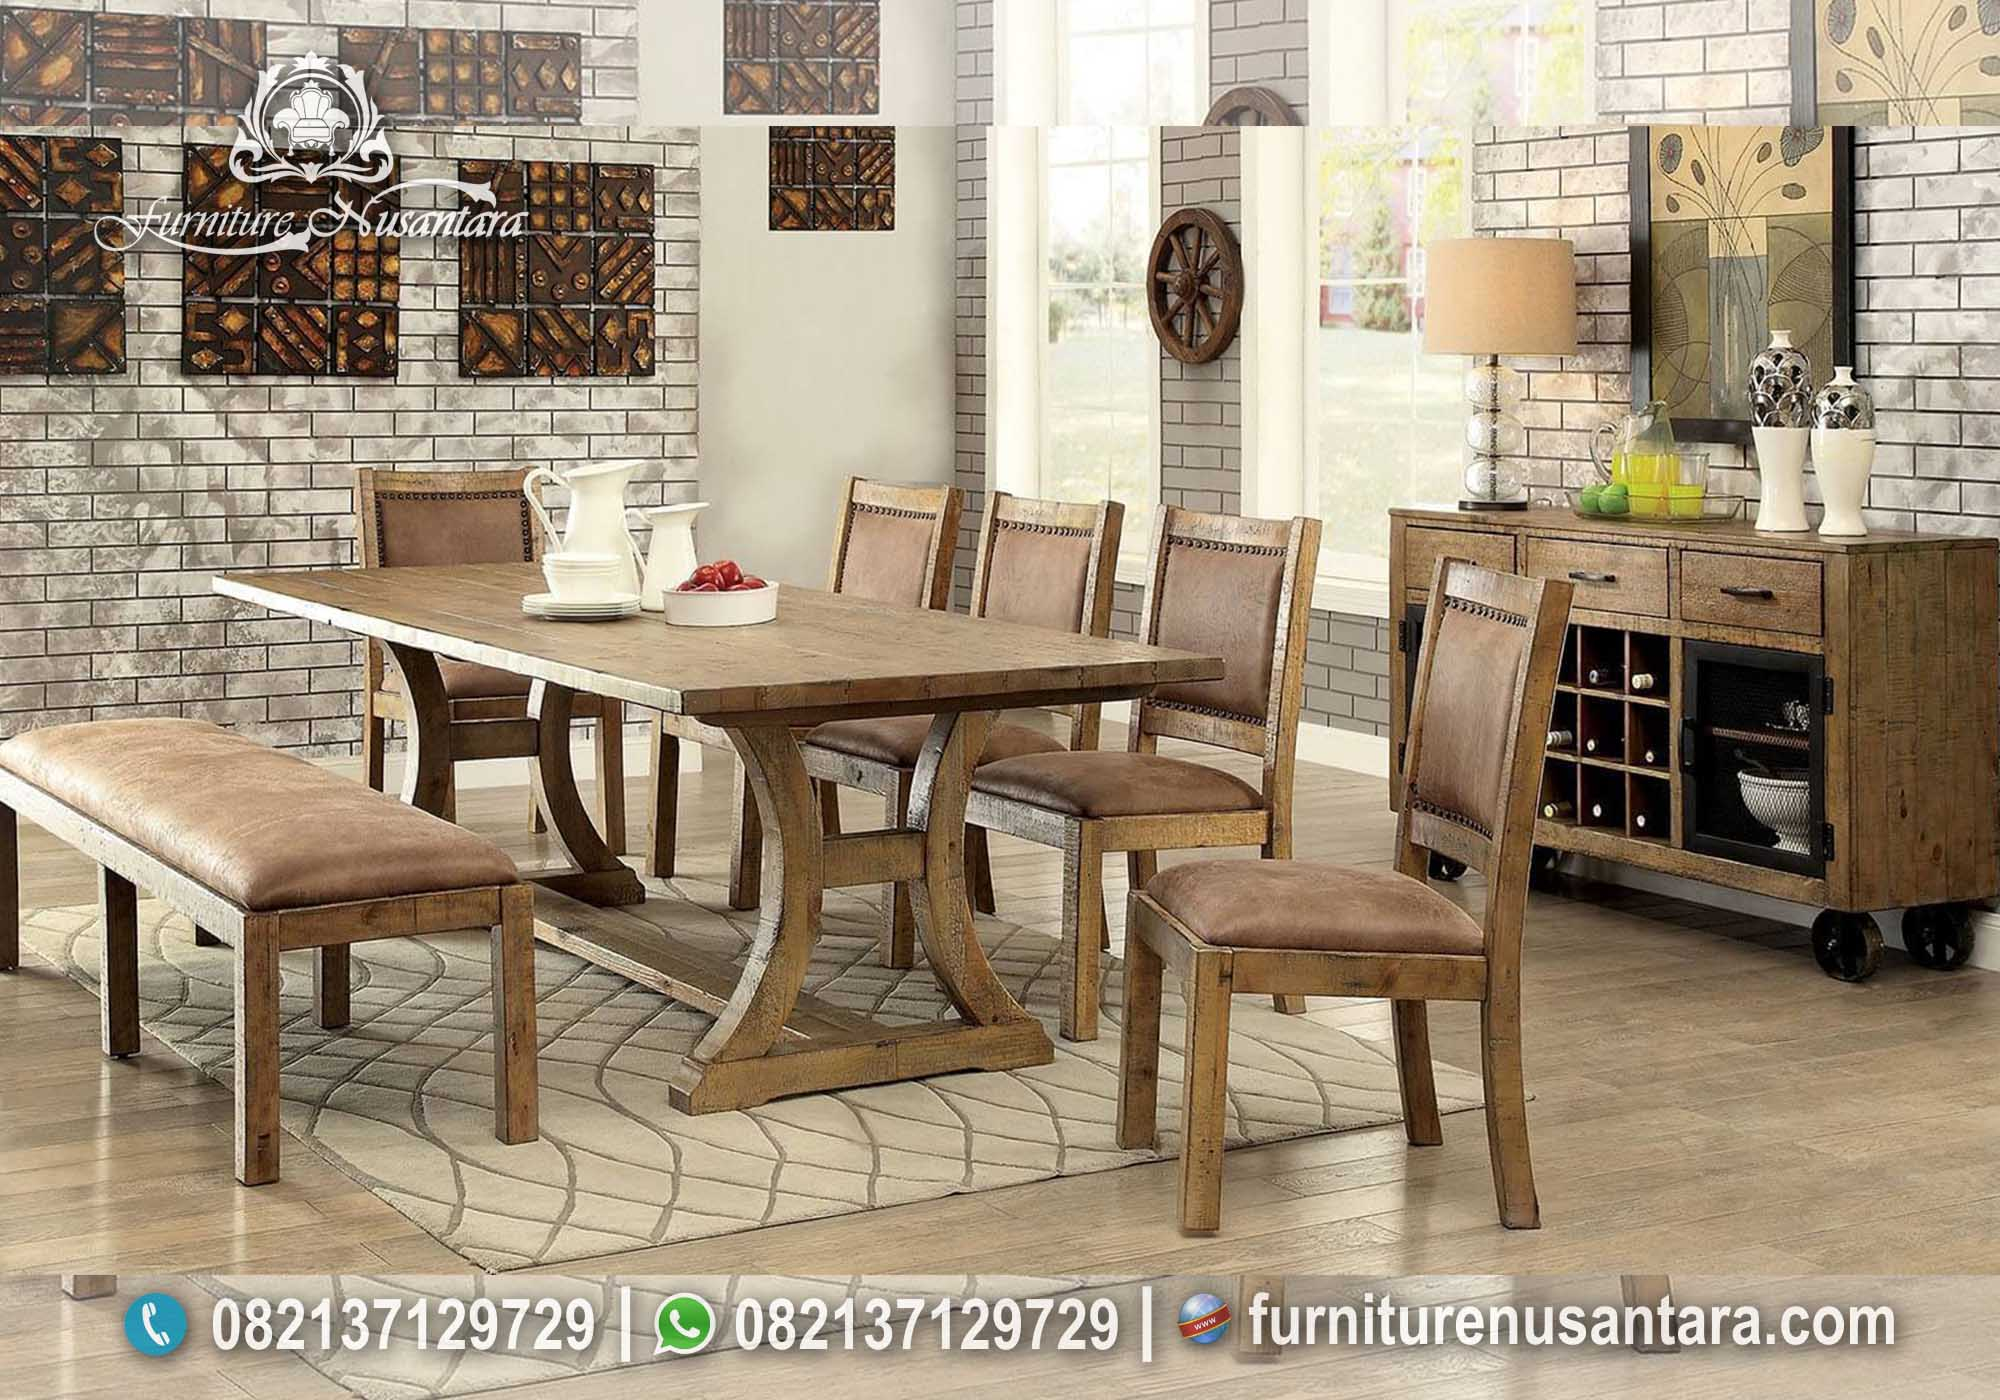 Set Meja Makan Antik Kayu Lama MM-93